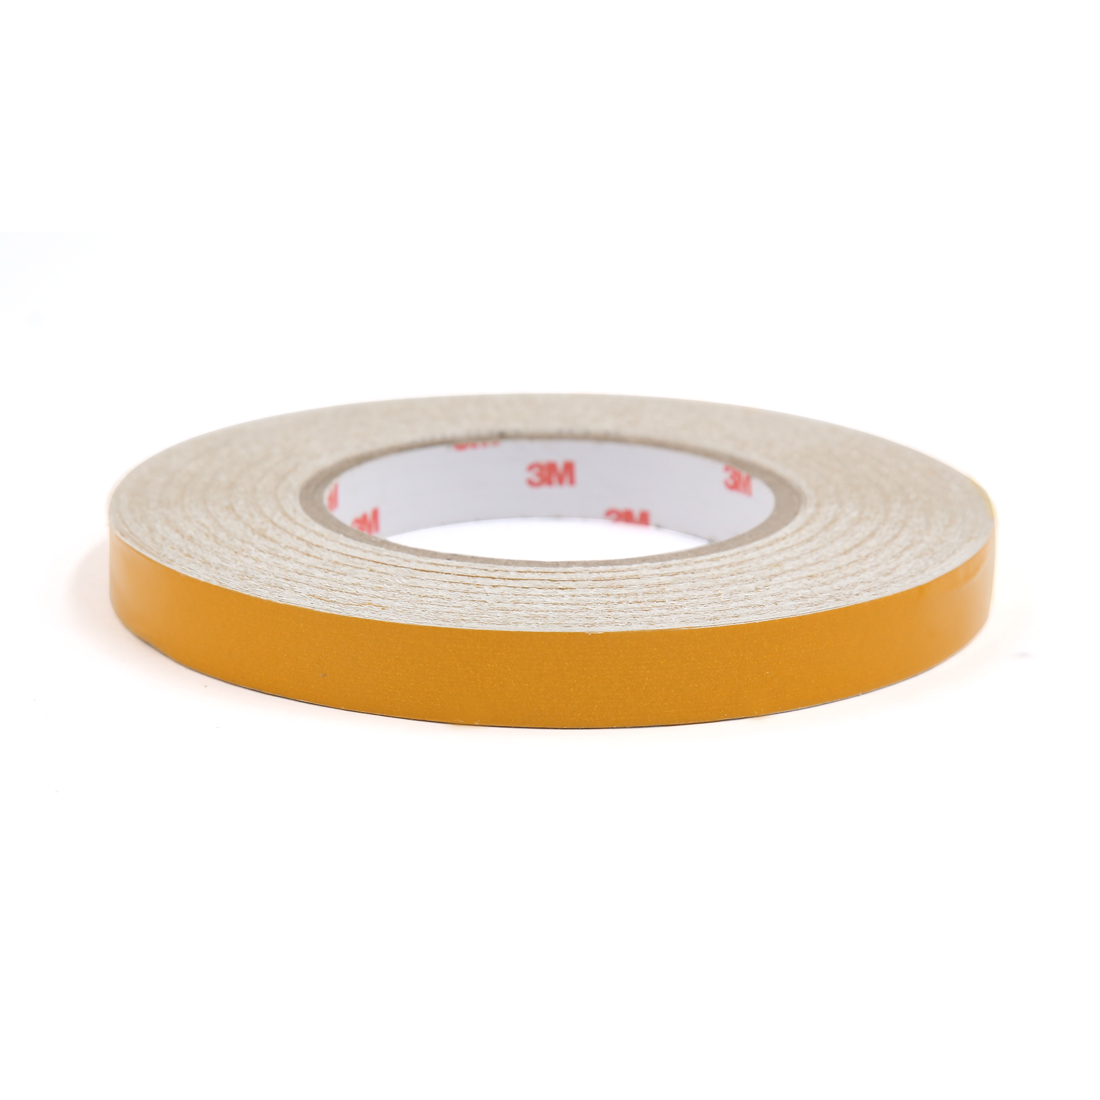 46M Yellow Reflective Tape Adhesive Decal Sticker Decor Stripe for Car Boat